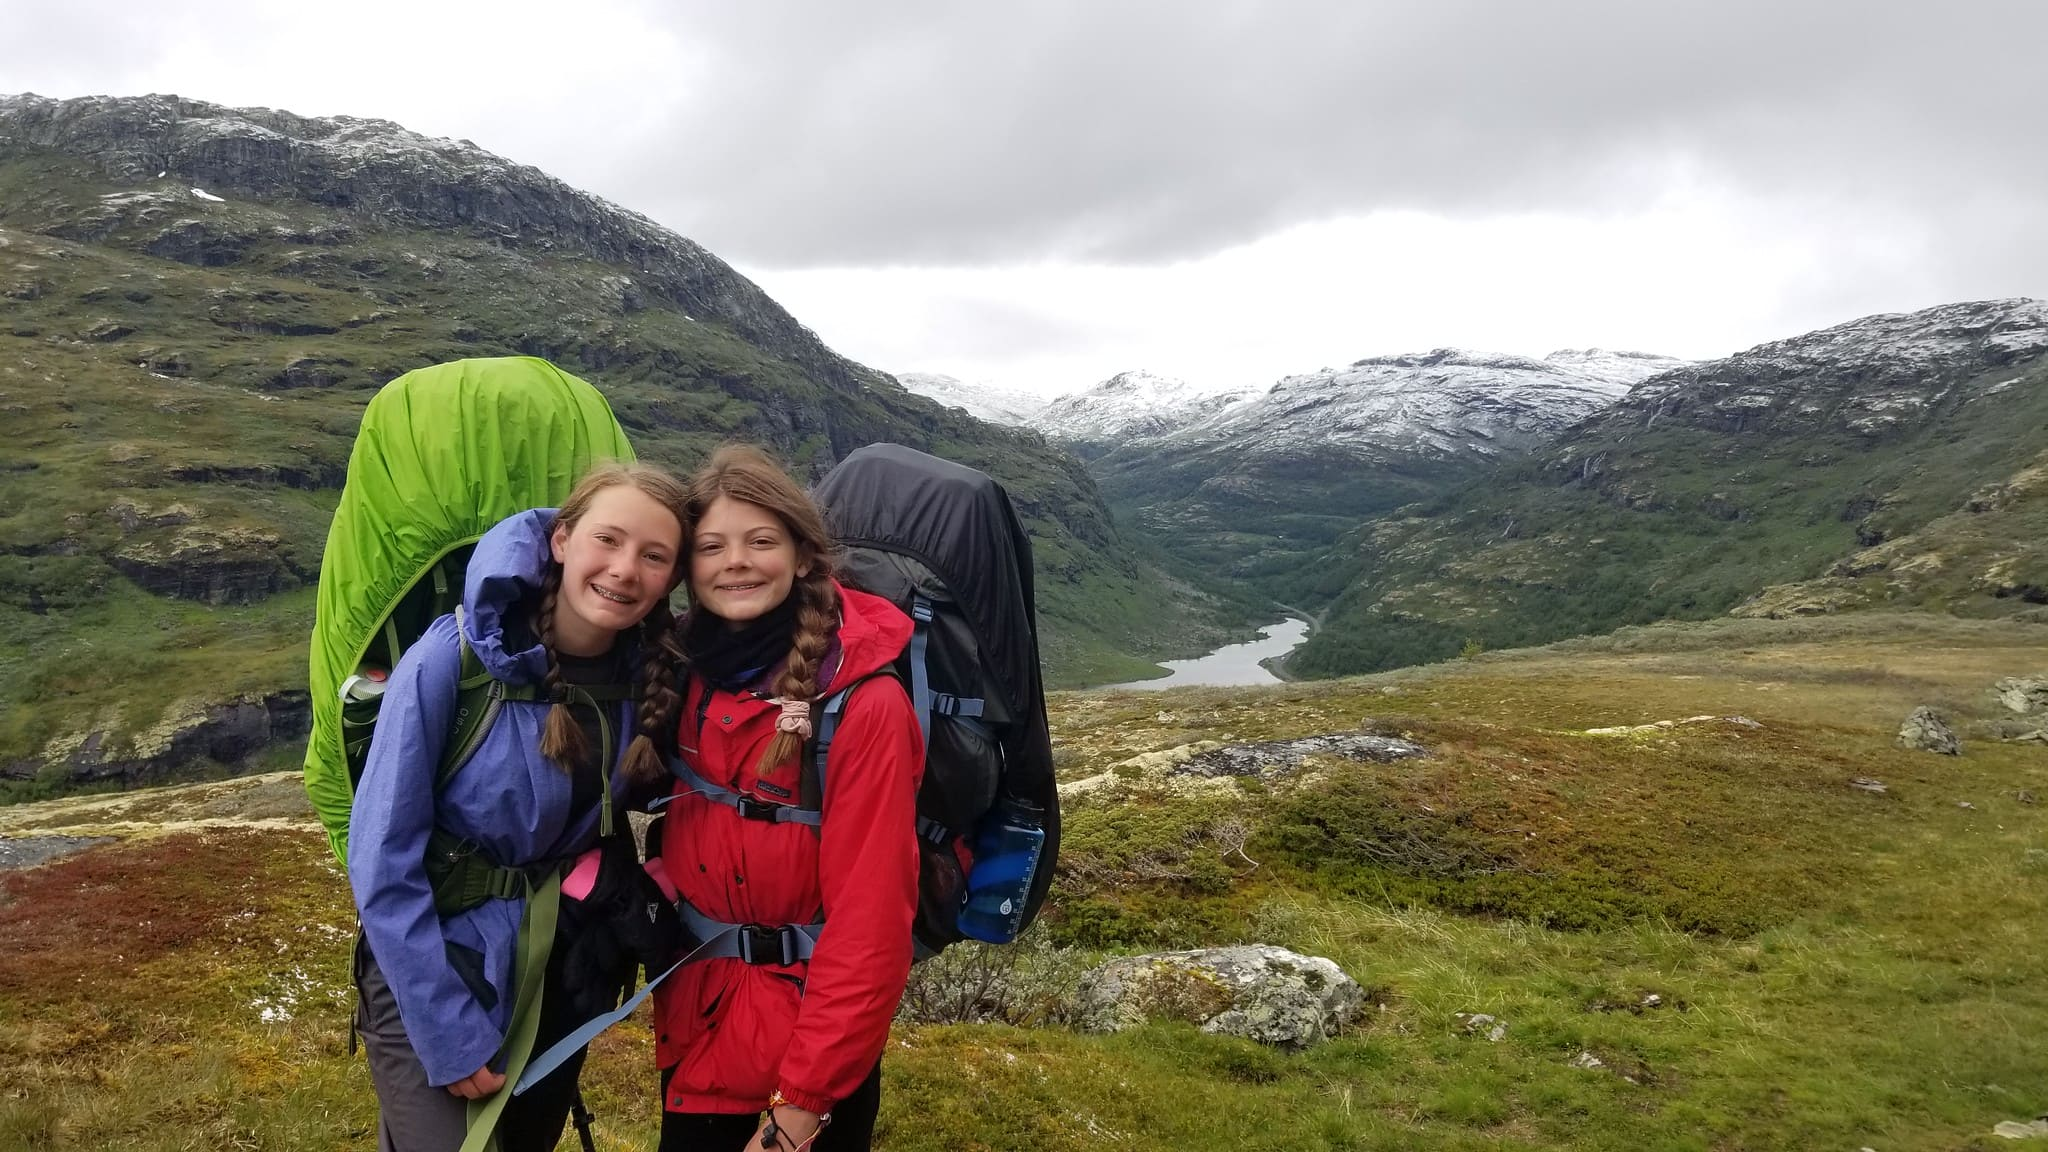 Girls have big backpacks and even bigger smiles when hiking in Norwegian wilderness this summer on an Overland teen summer adventure program